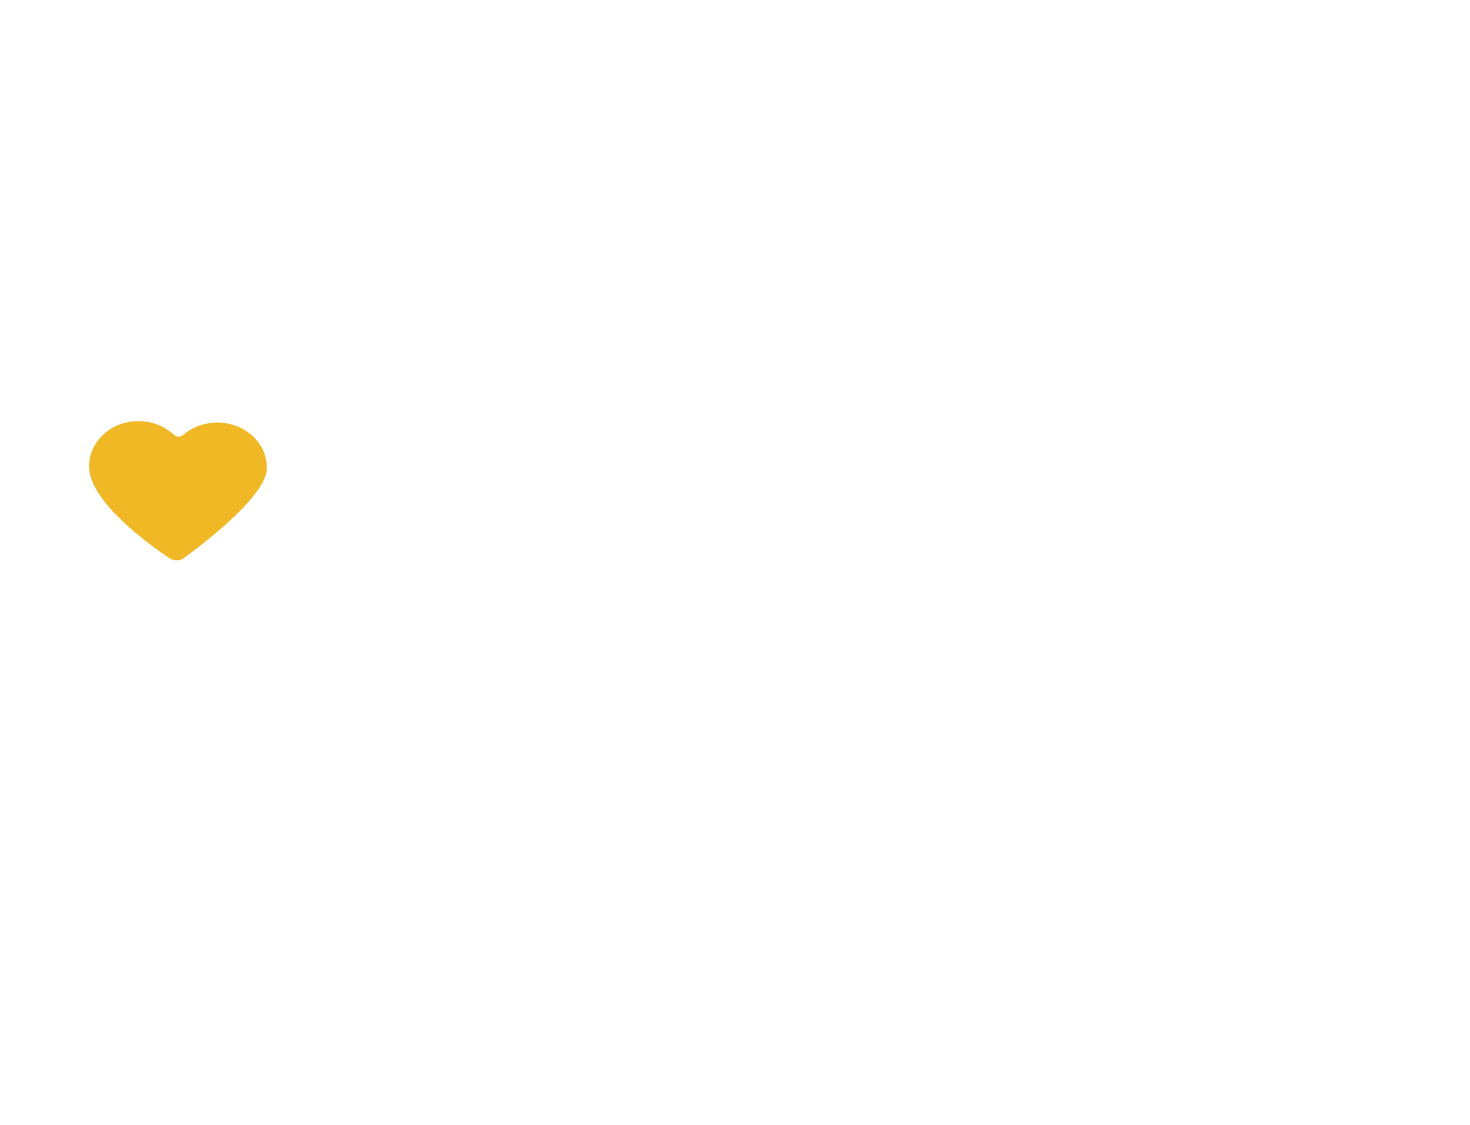 JFCS - Logo - Primary - White - yellow heart